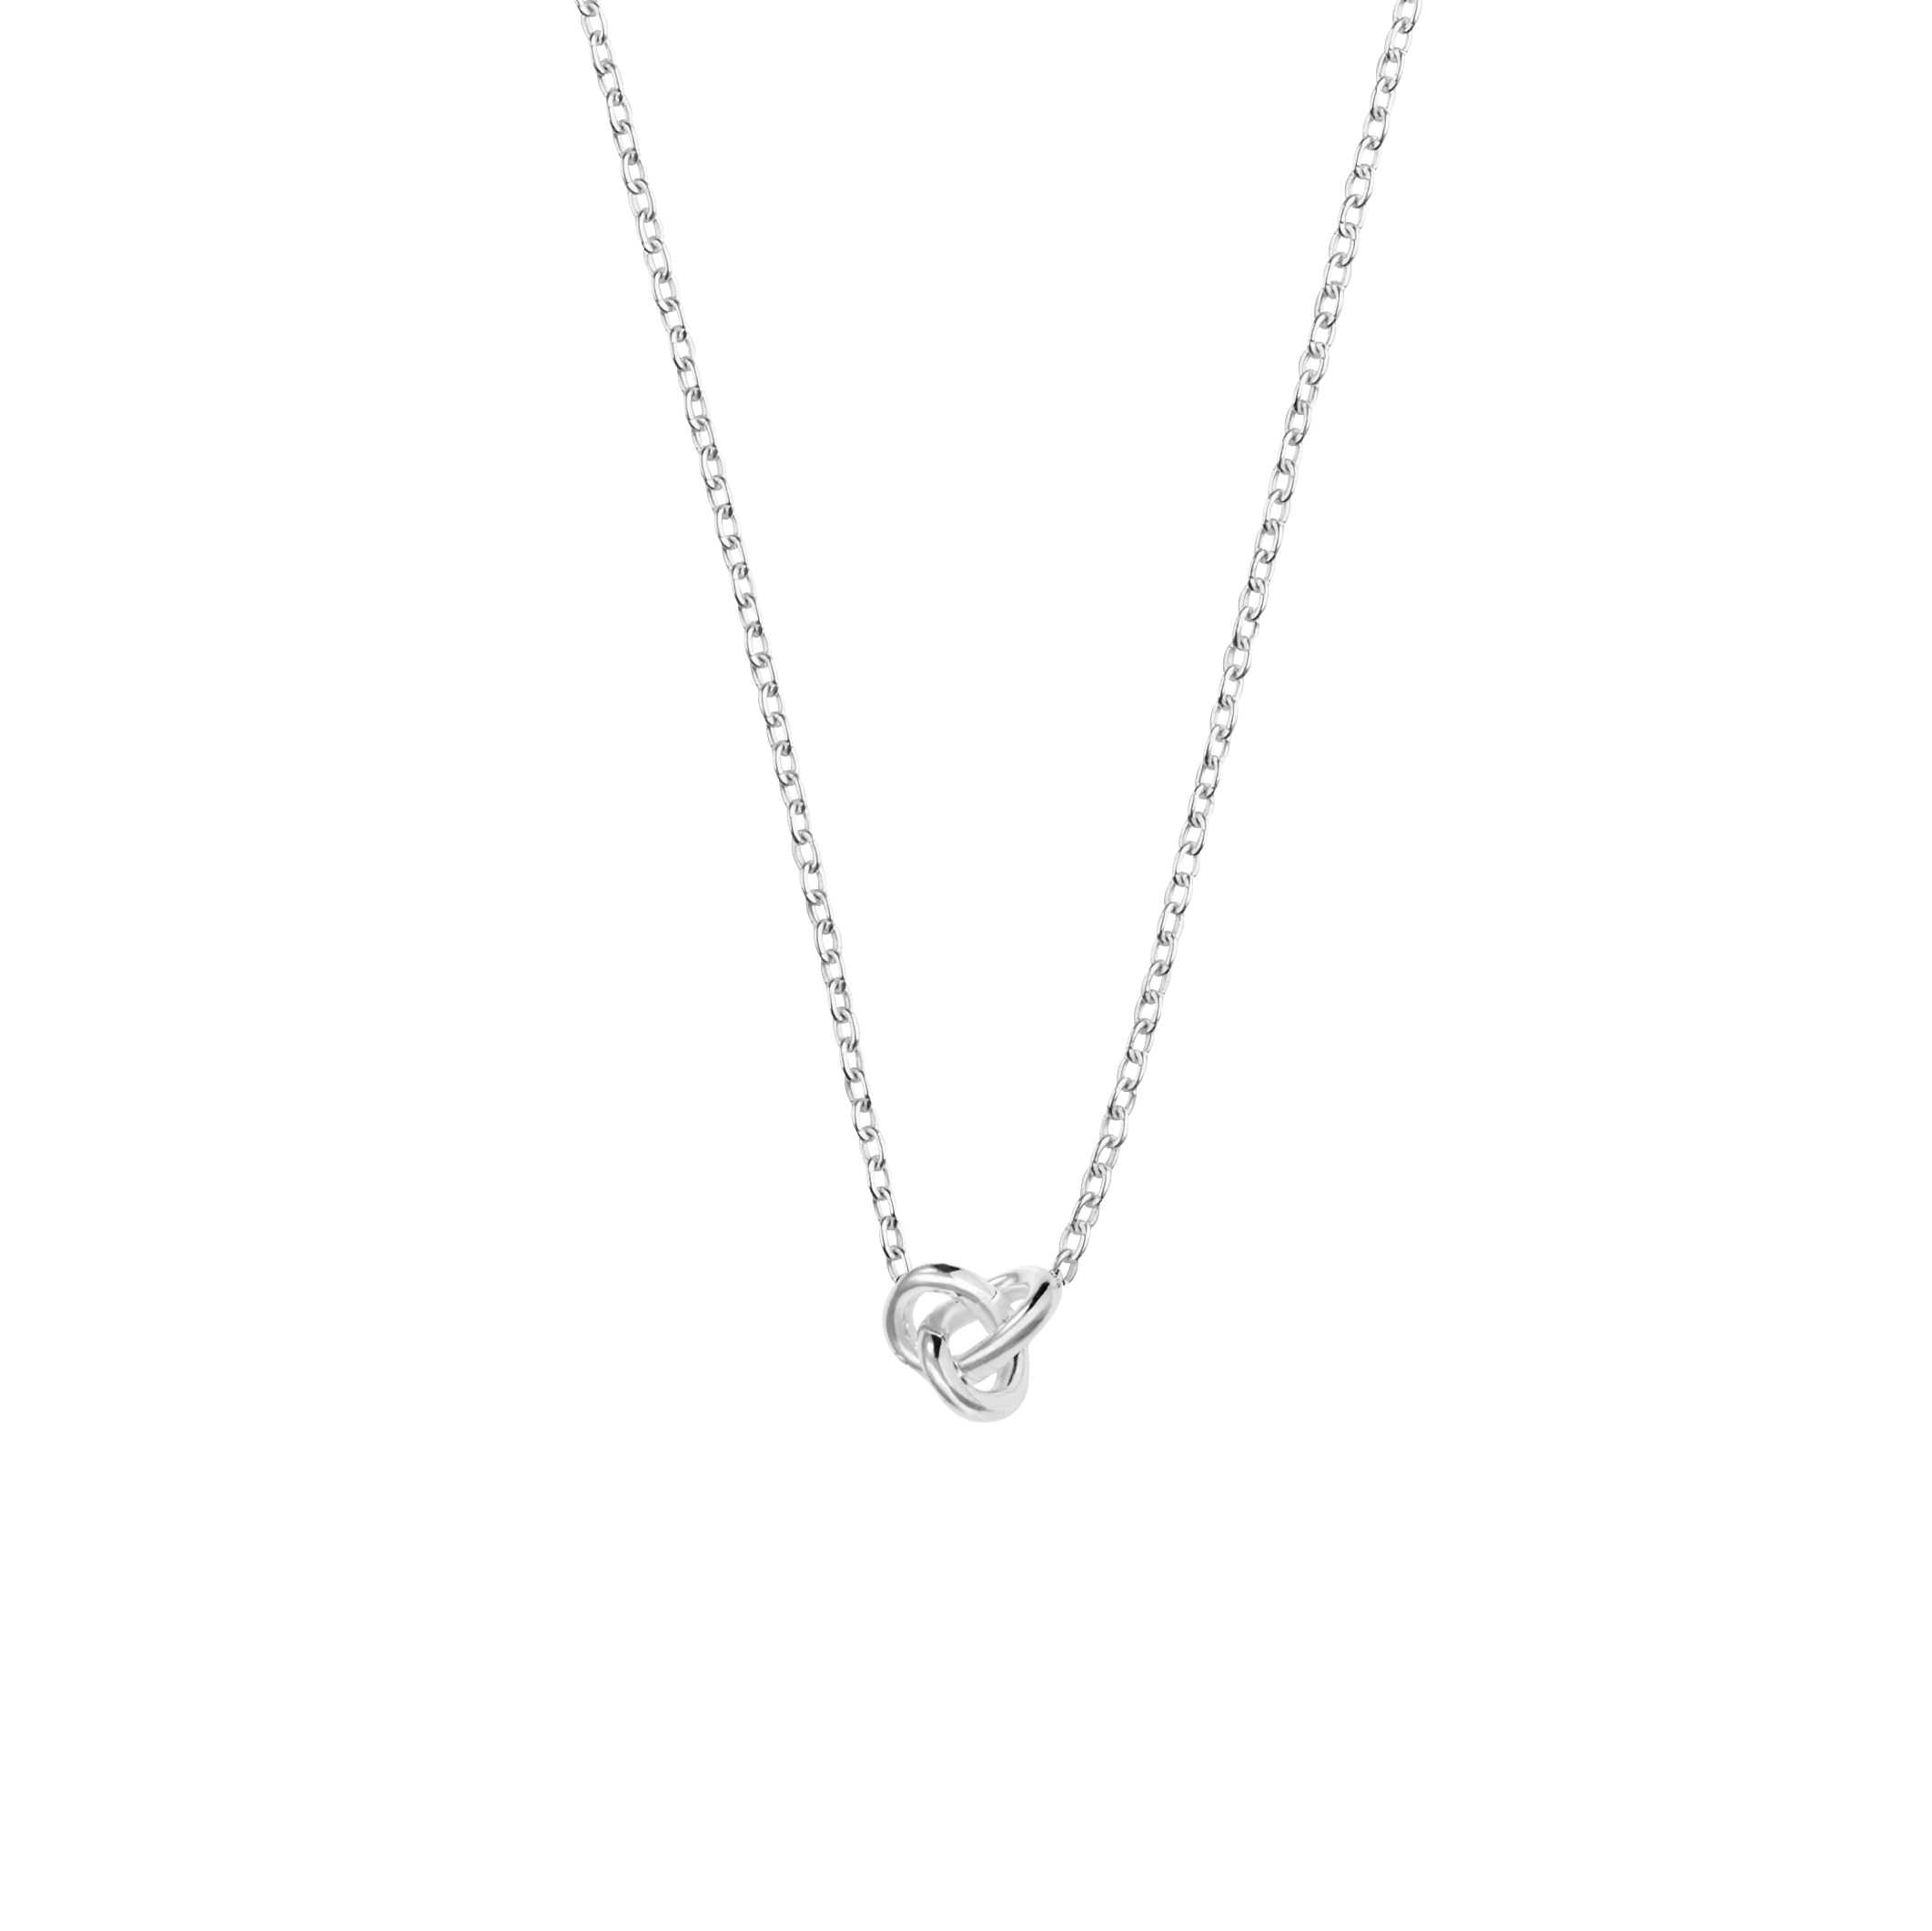 Le knot drop necklace